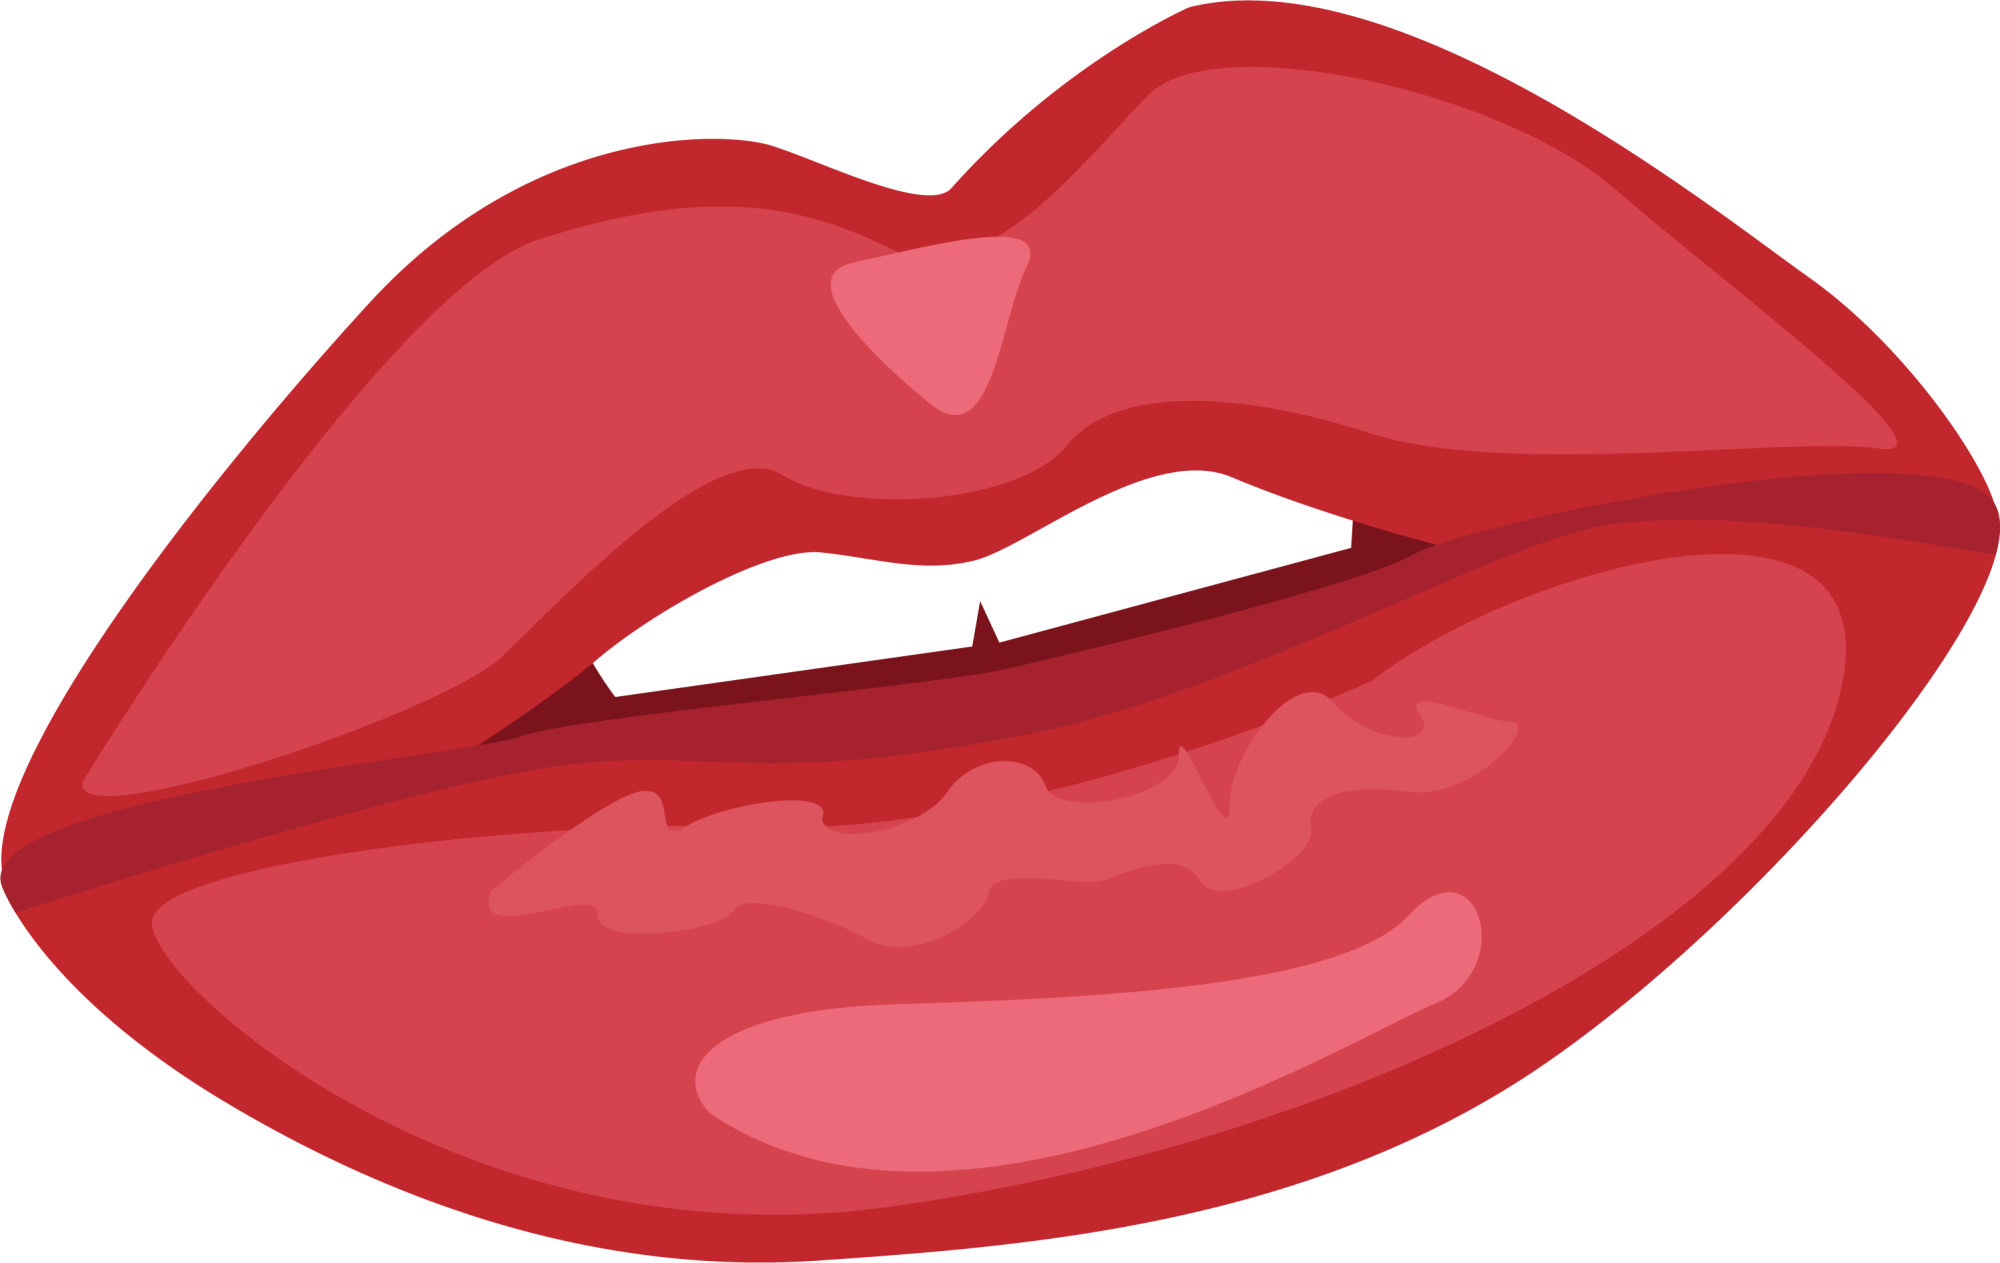 Lipstick clipart icon. Lip red android application